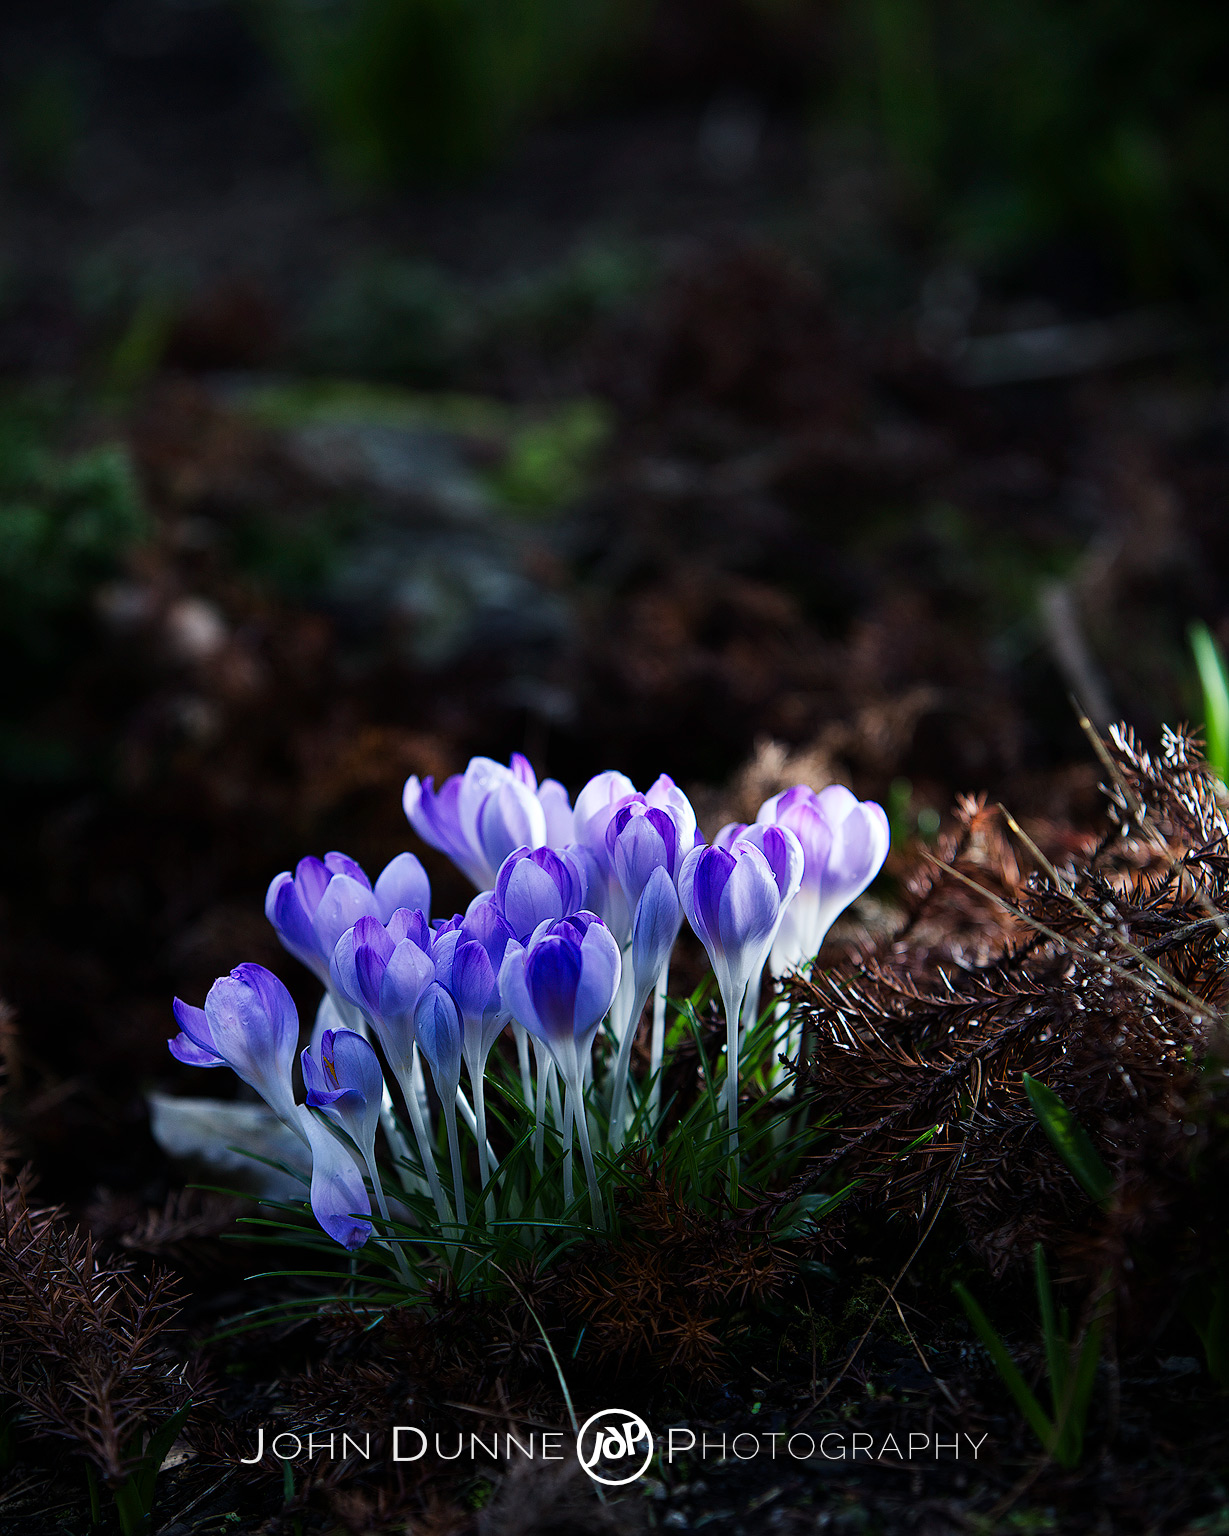 Purple Crocuses on the Forest Floor by John Dunne.